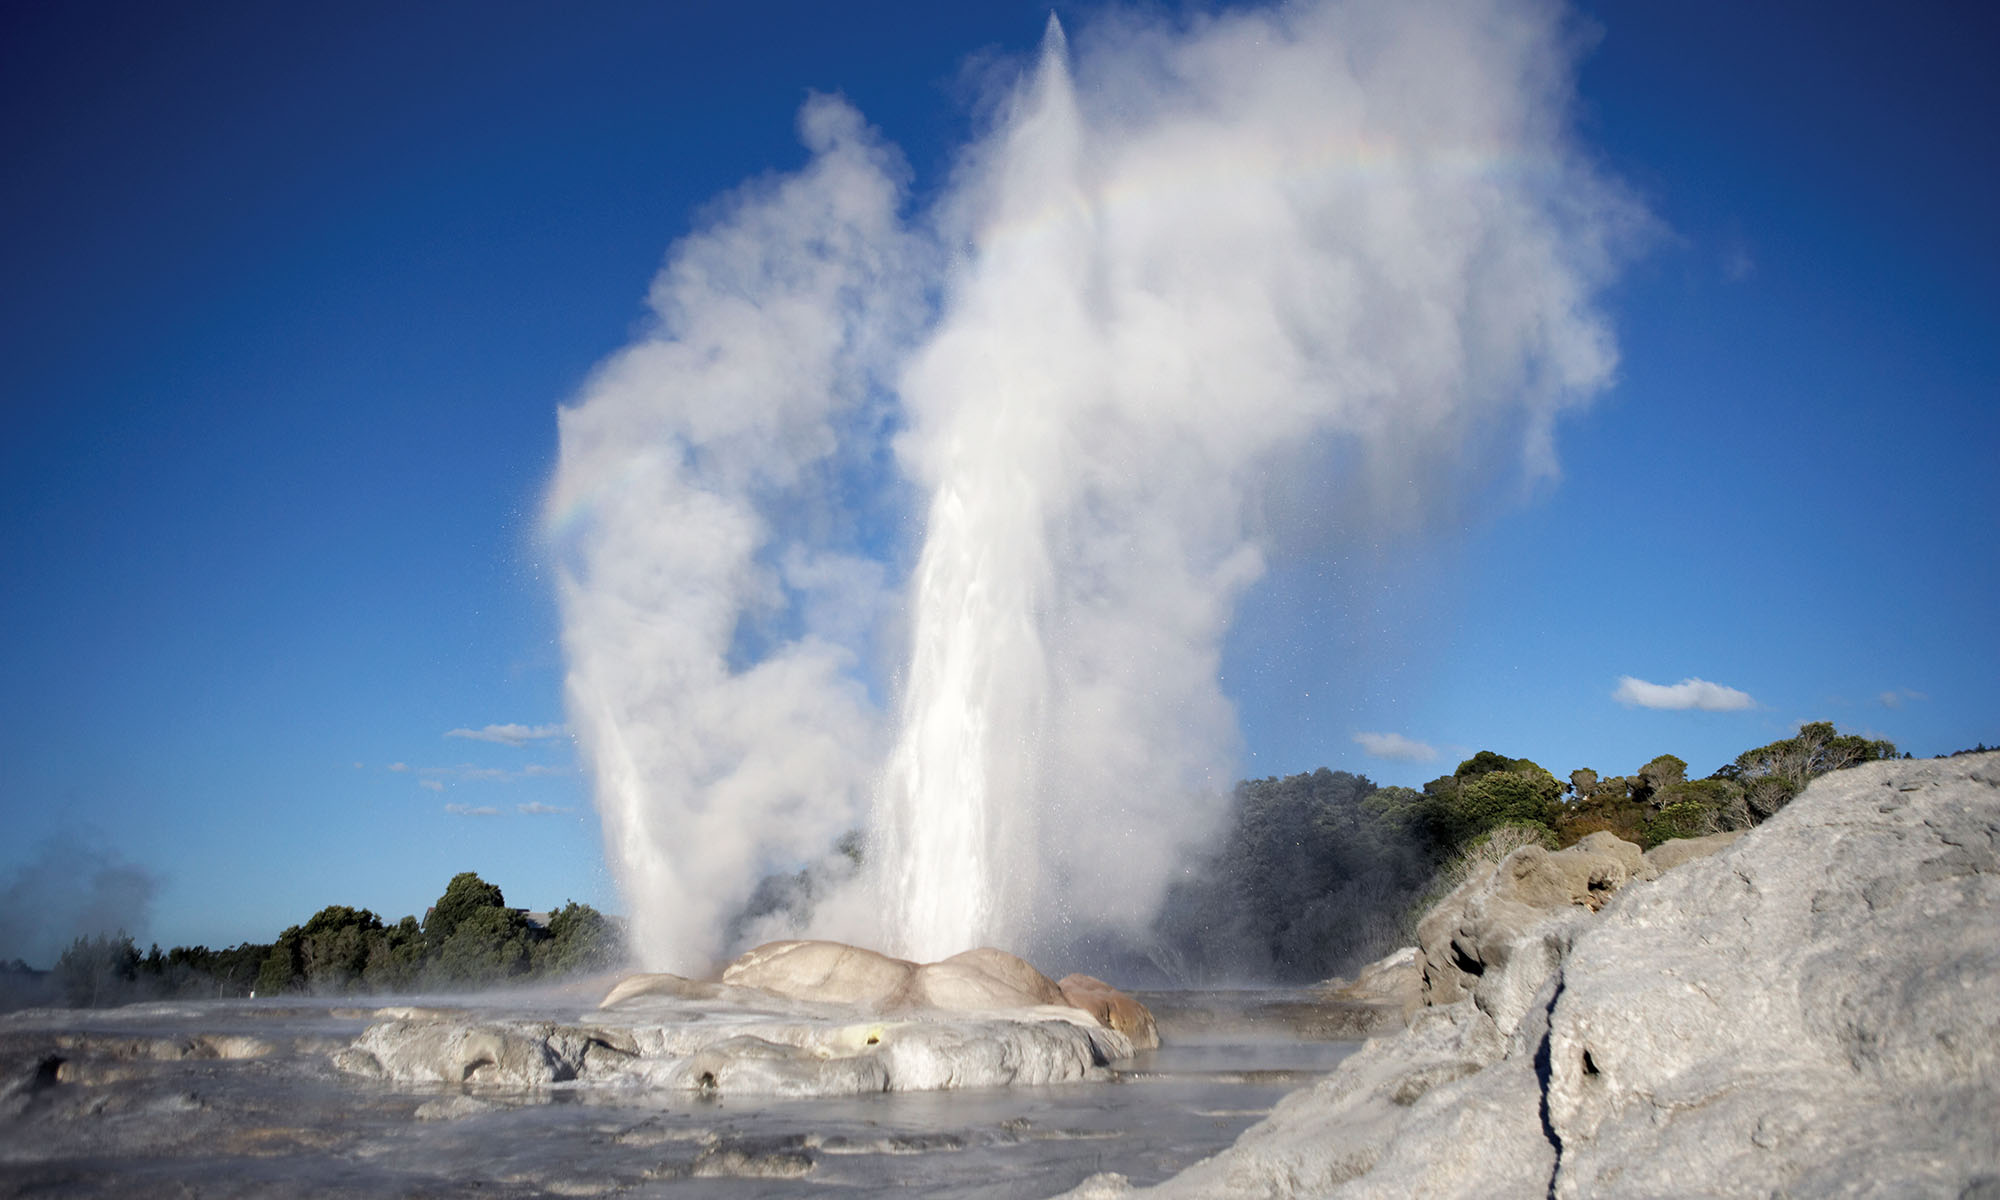 Geyser in Te Puia Thermal Reserve, New Zealand